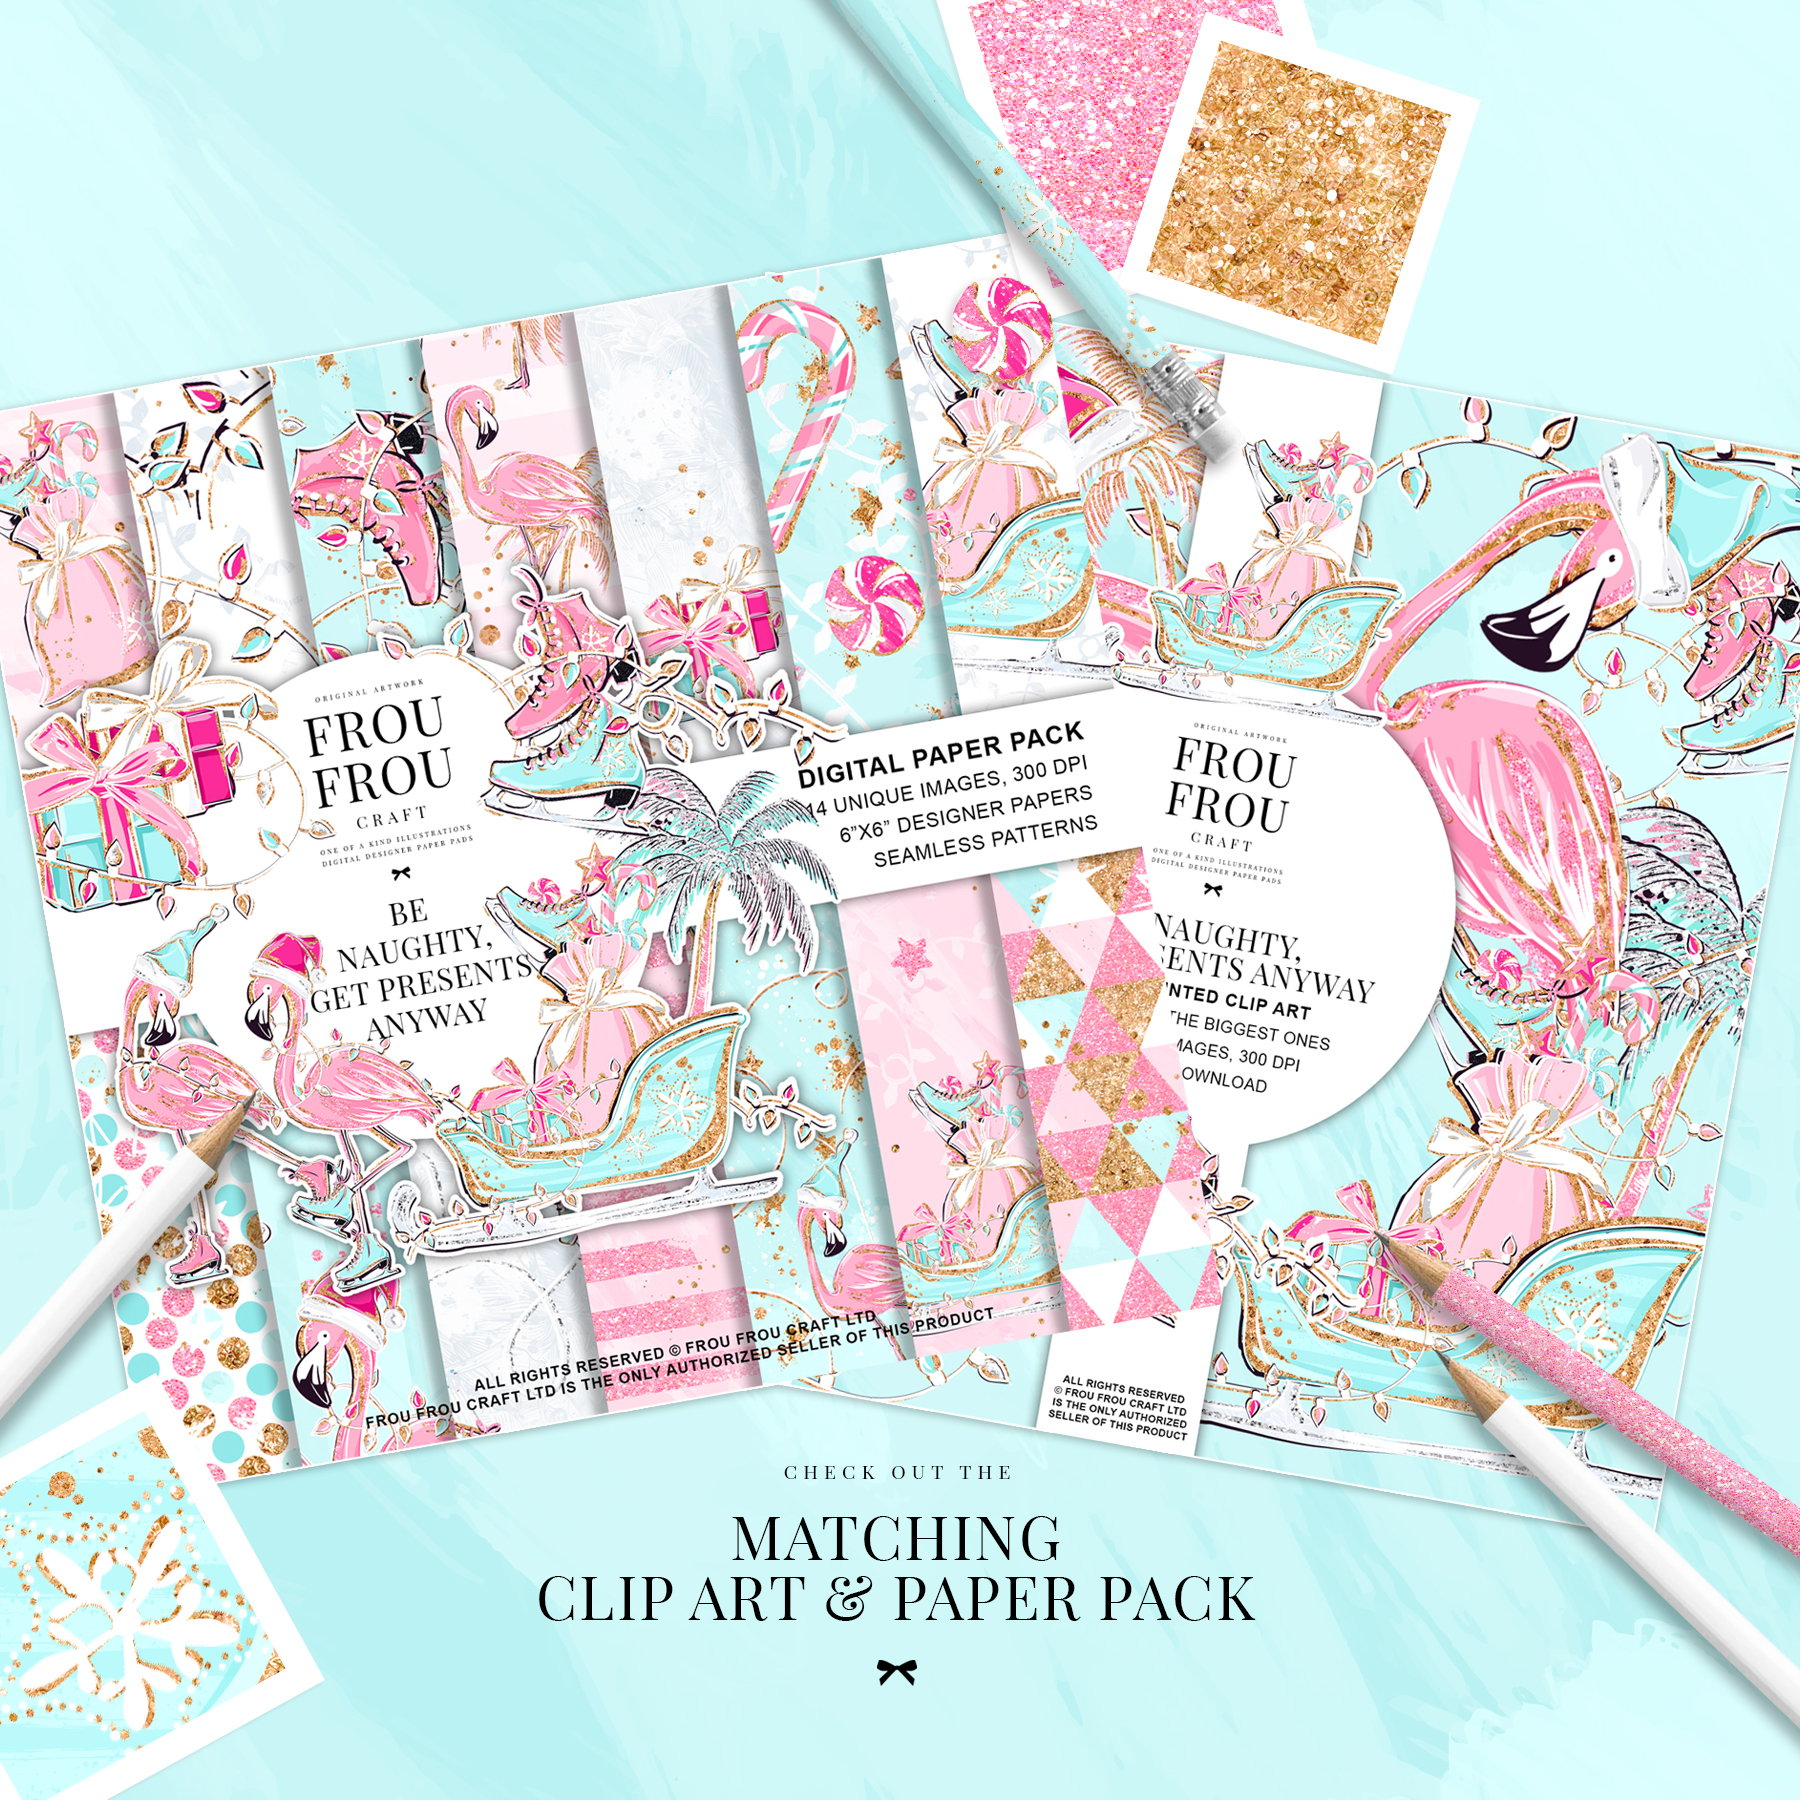 Pink Flamingo Christmas Presents Glitter Paper Pack example image 2